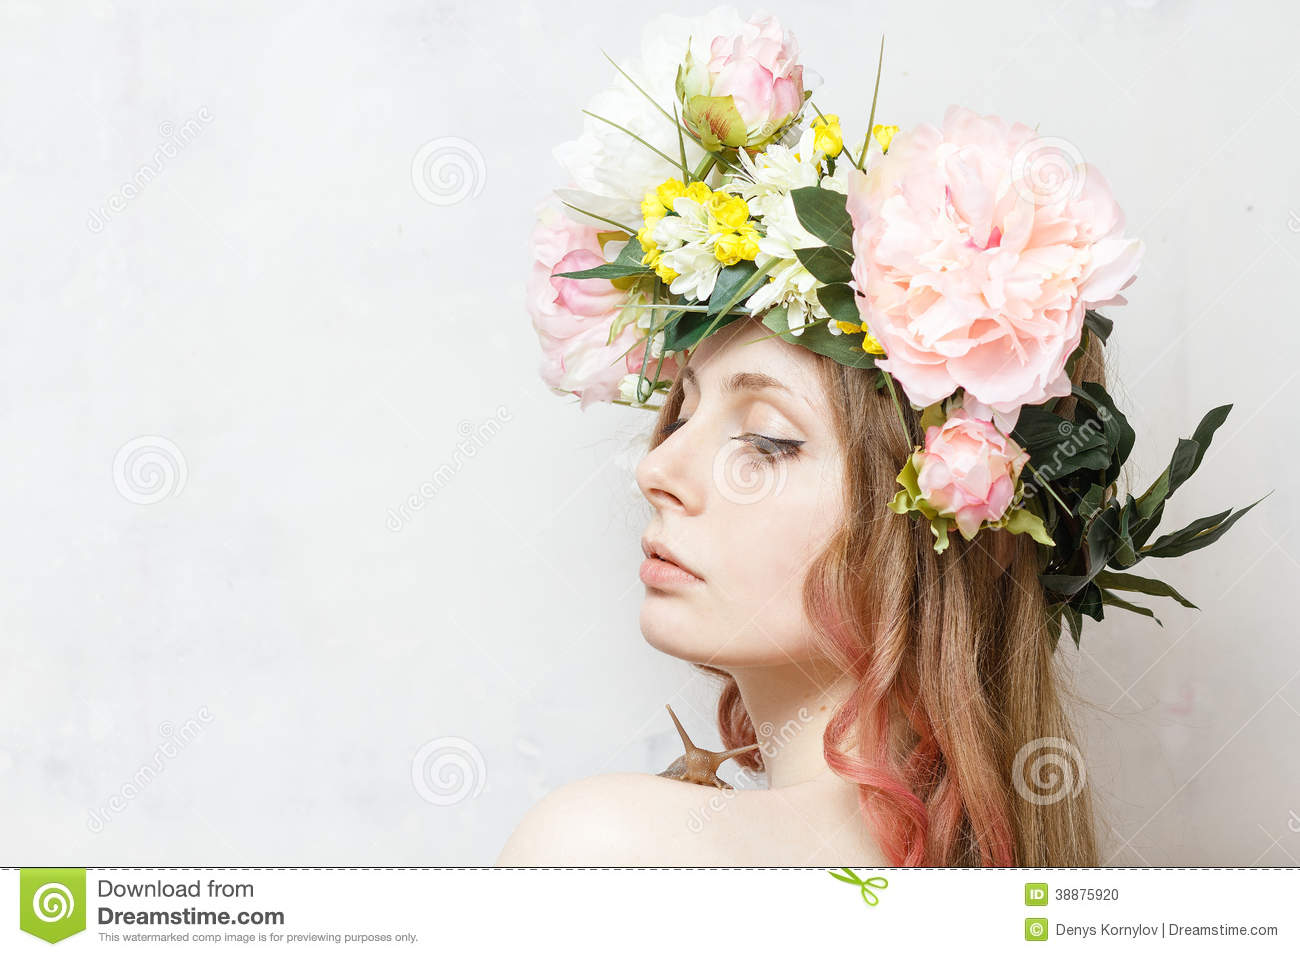 Calm Pretty Girl With Snail And Flower Crown Stock Photo Image Of